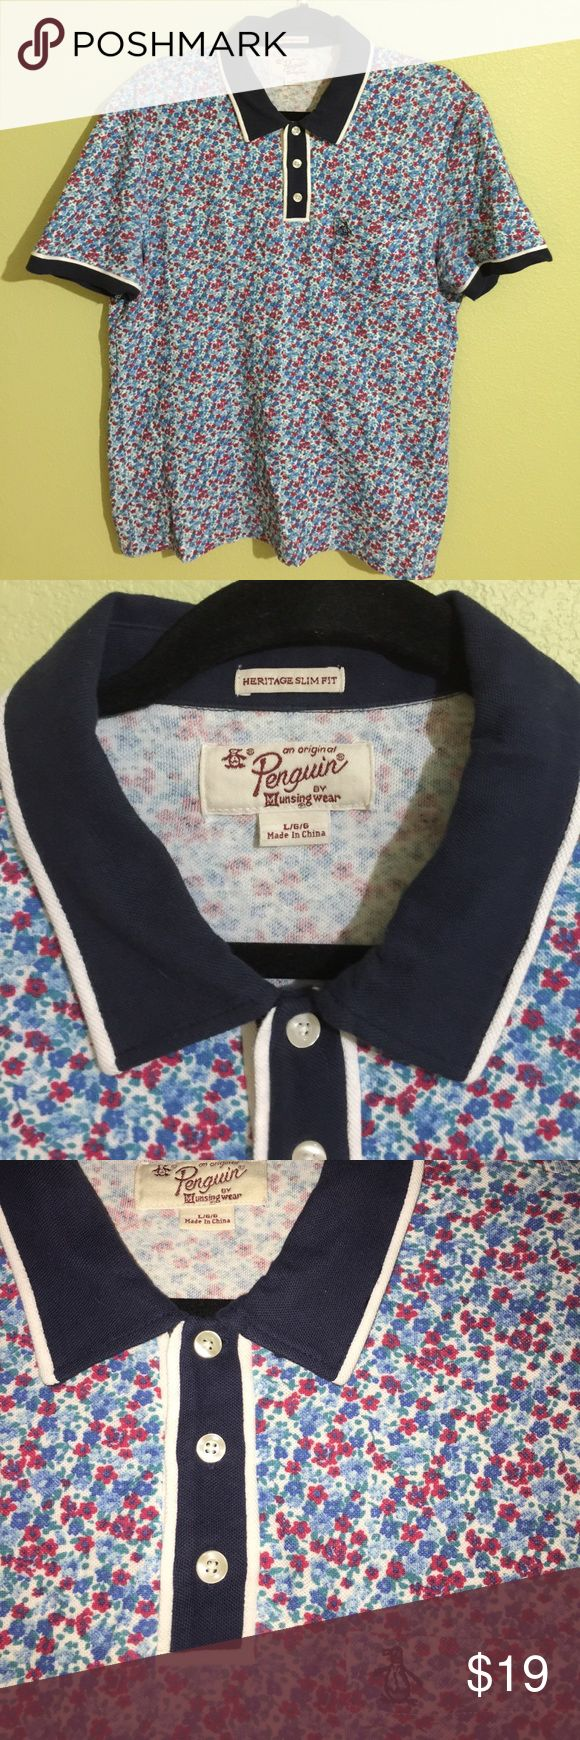 Penguin Polo Shirt Collar - Sz L Slim Fit, Floral Penguin Floral Polo Collar Shirt | Size: L (Slim fit, but fits more like a medium) | Condition: Pre-Owned 8/10 (Great condition! Regular wear, only flaw is staining/smudging on the bottom back of the shirt as pictured) | Reasonable offers are welcome! Original Penguin Shirts Polos